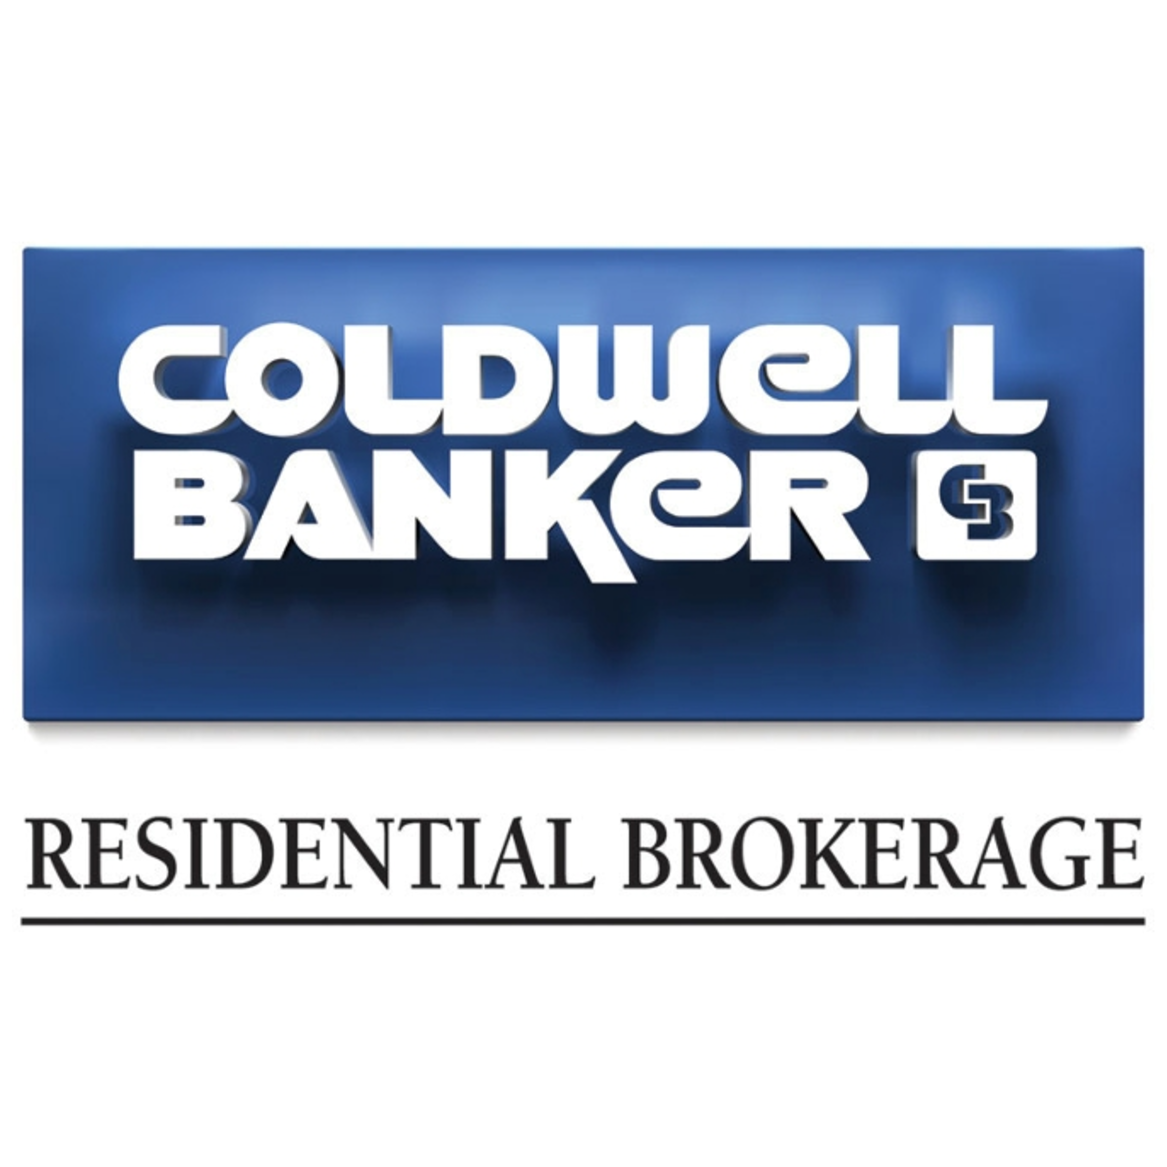 Kevin Wilgenbusch Properties - Coldwell Banker Residential Brokerage